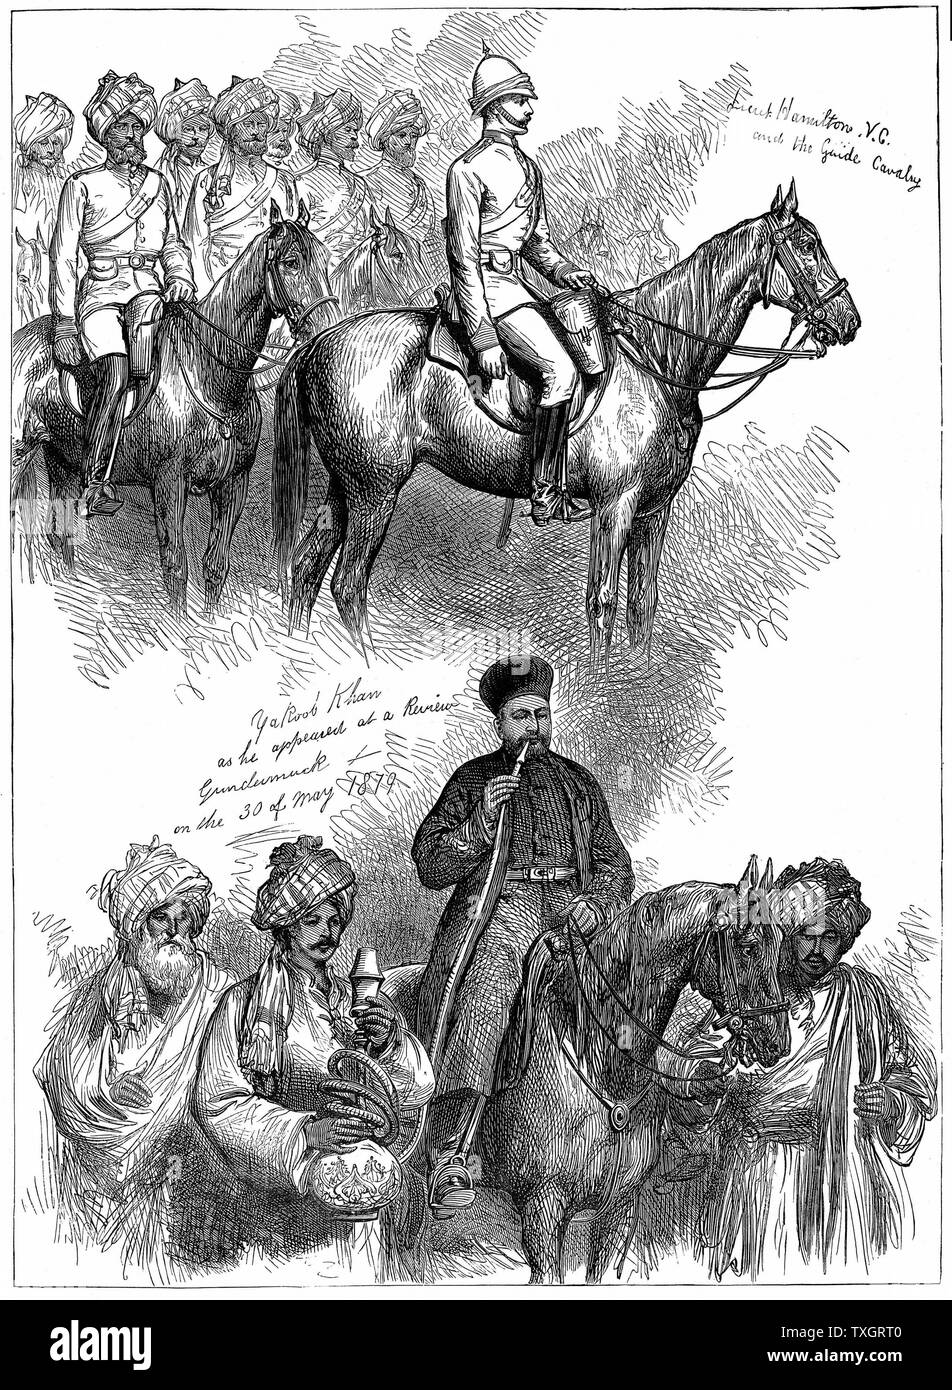 Second Anglo-Afghan War (1878-1880): Yakub (Yakoob) Khan, ruler of Afghanistan, at a review at Gundamuck, 30 May 1879, after signing of Treaty of Gundamuck on 26 May. At top, Lieut Hamilton rides at the head of a native regiment of Guides.  1879 Wood engraving - Stock Image